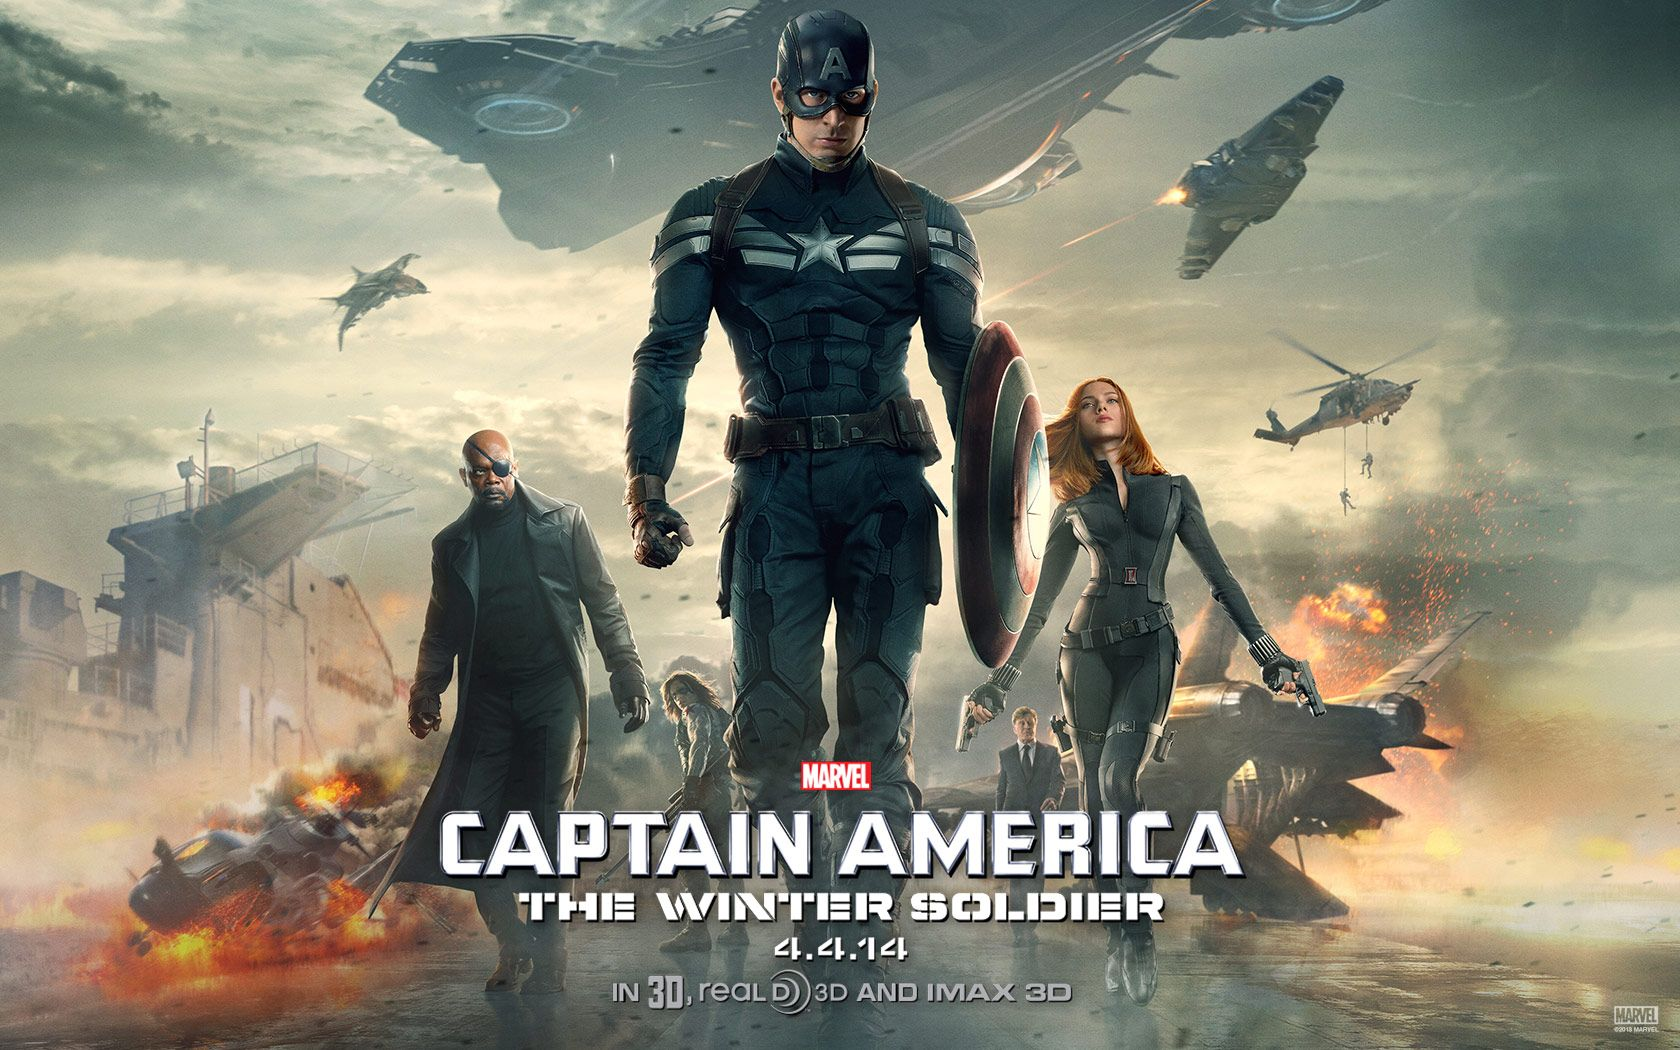 Notes On A Film – Captain America: The Winter Soldier